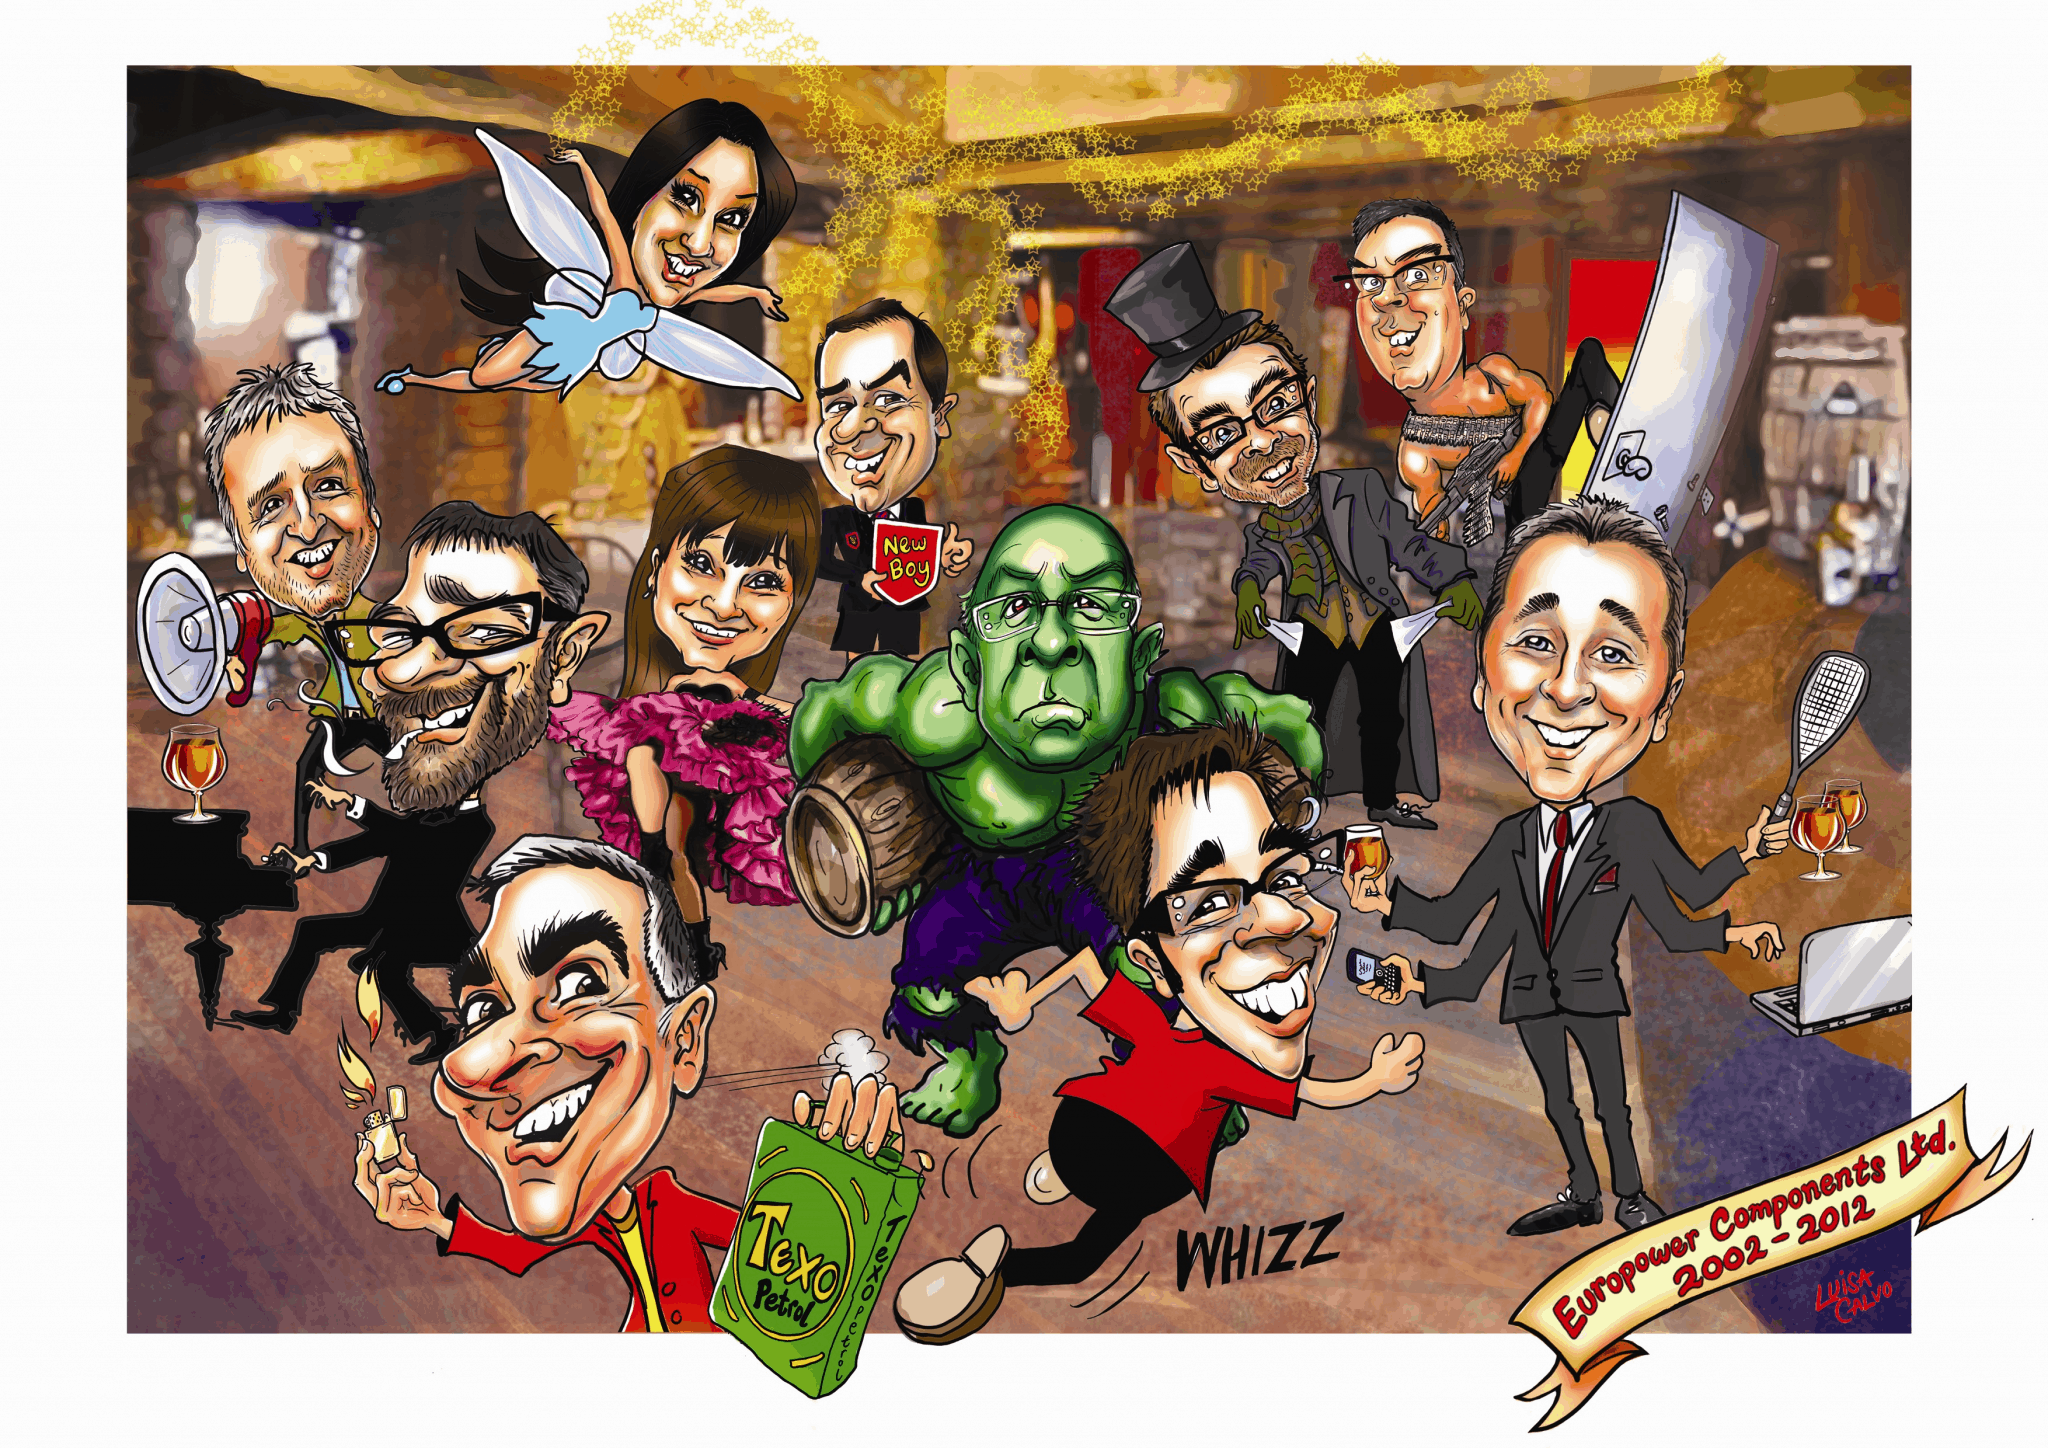 Group caricature for Europower Components by Luisa Calvo